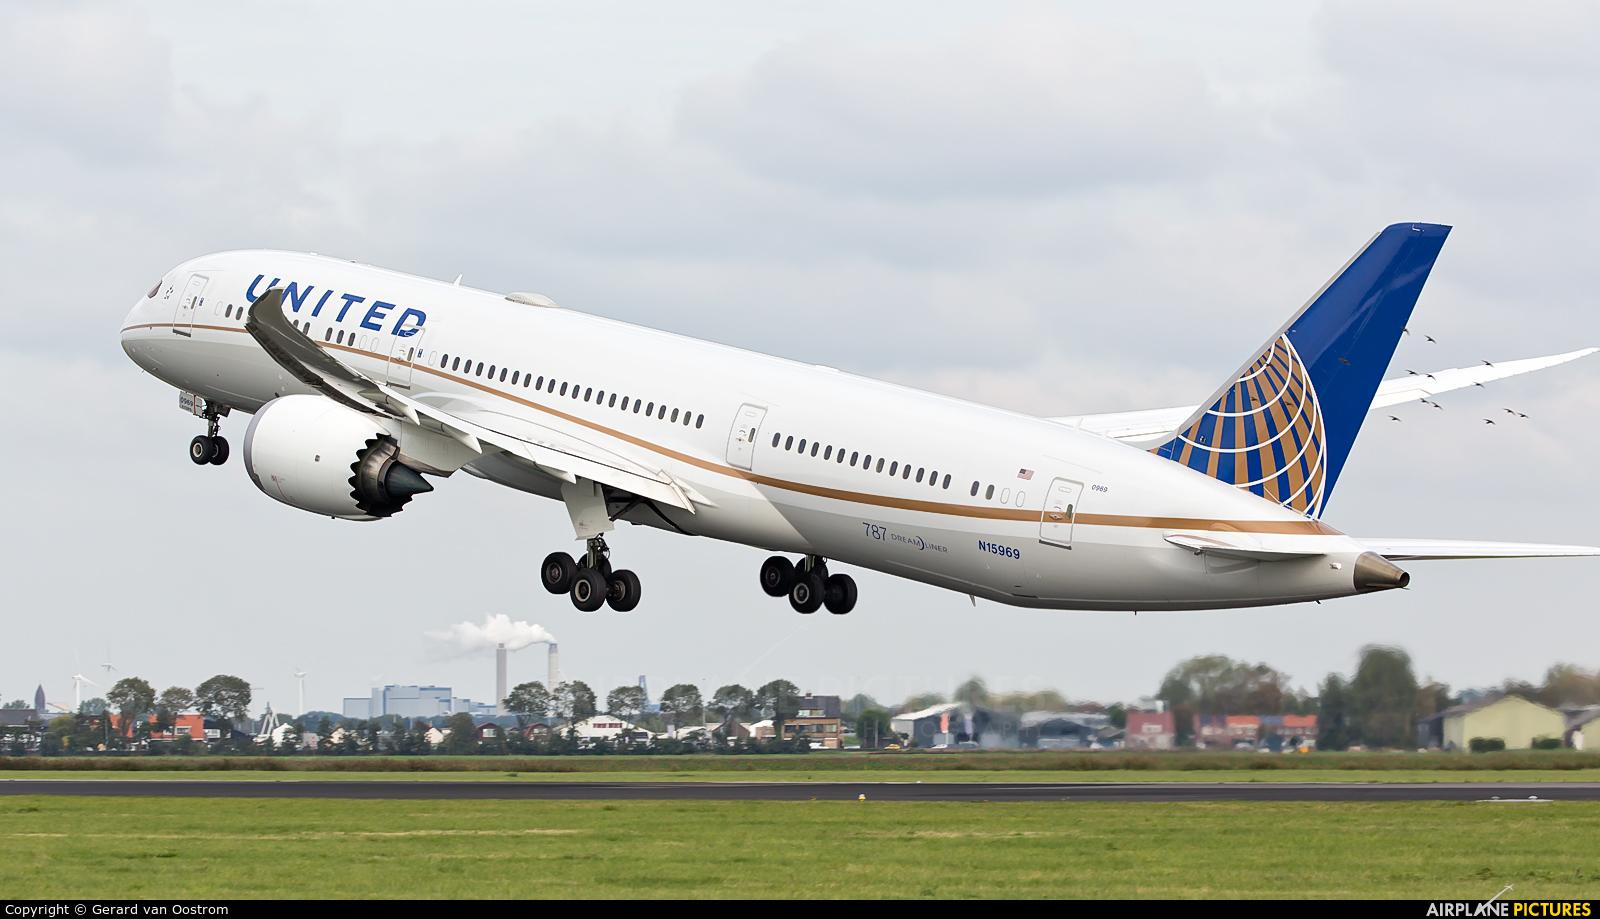 United Airlines N15969 aircraft at Amsterdam - Schiphol